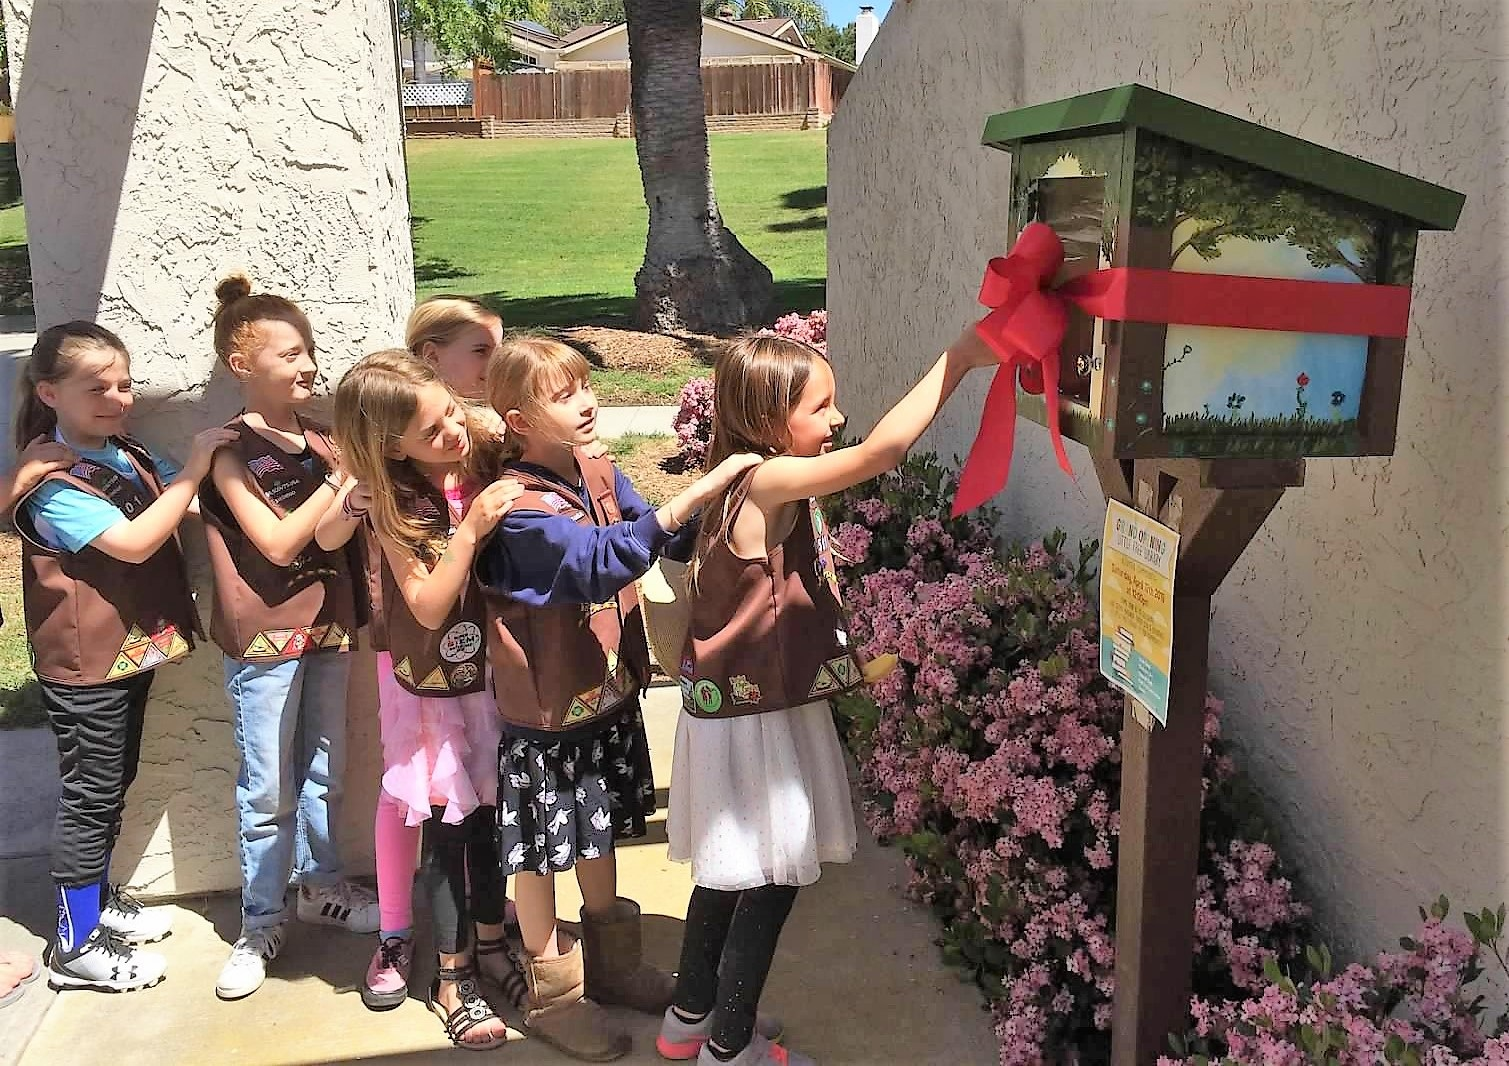 Girl Scout Brownie Troop 1501, led by County employee Melissa Bartolome, used money from cookie sales to donate a Little Free Library to the Altamira community in Carlsbad